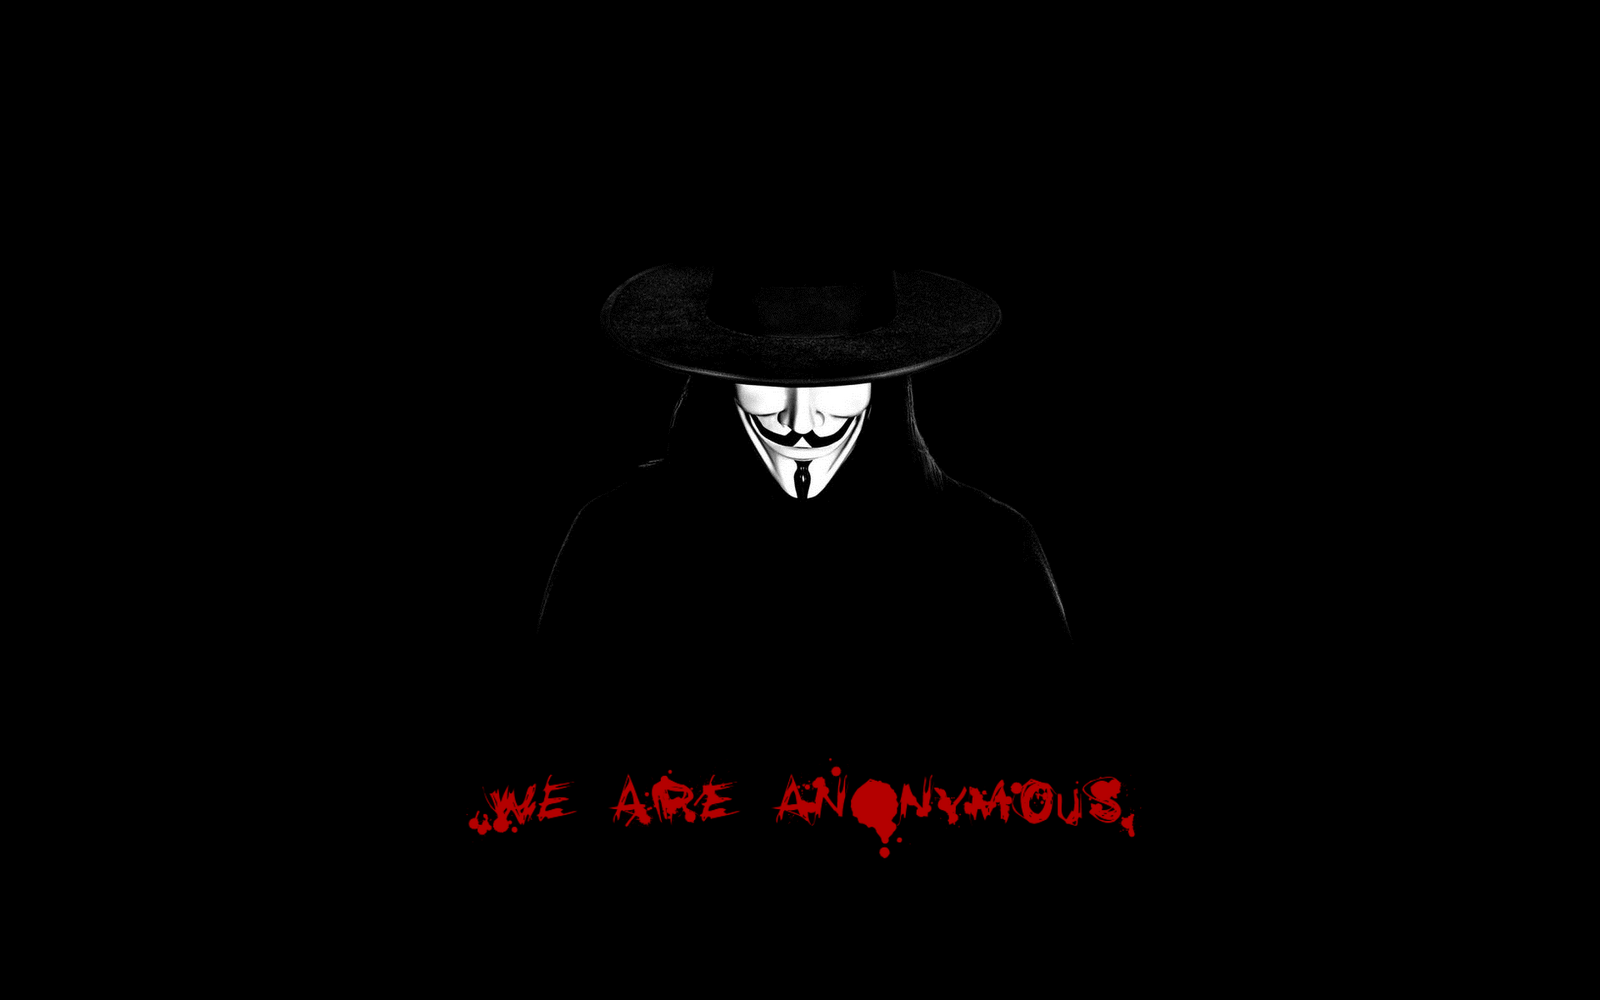 Awesome Quotes Wallpapers Free Download Wallpapers And Other Cool Stuff 16th Of December Anonymous